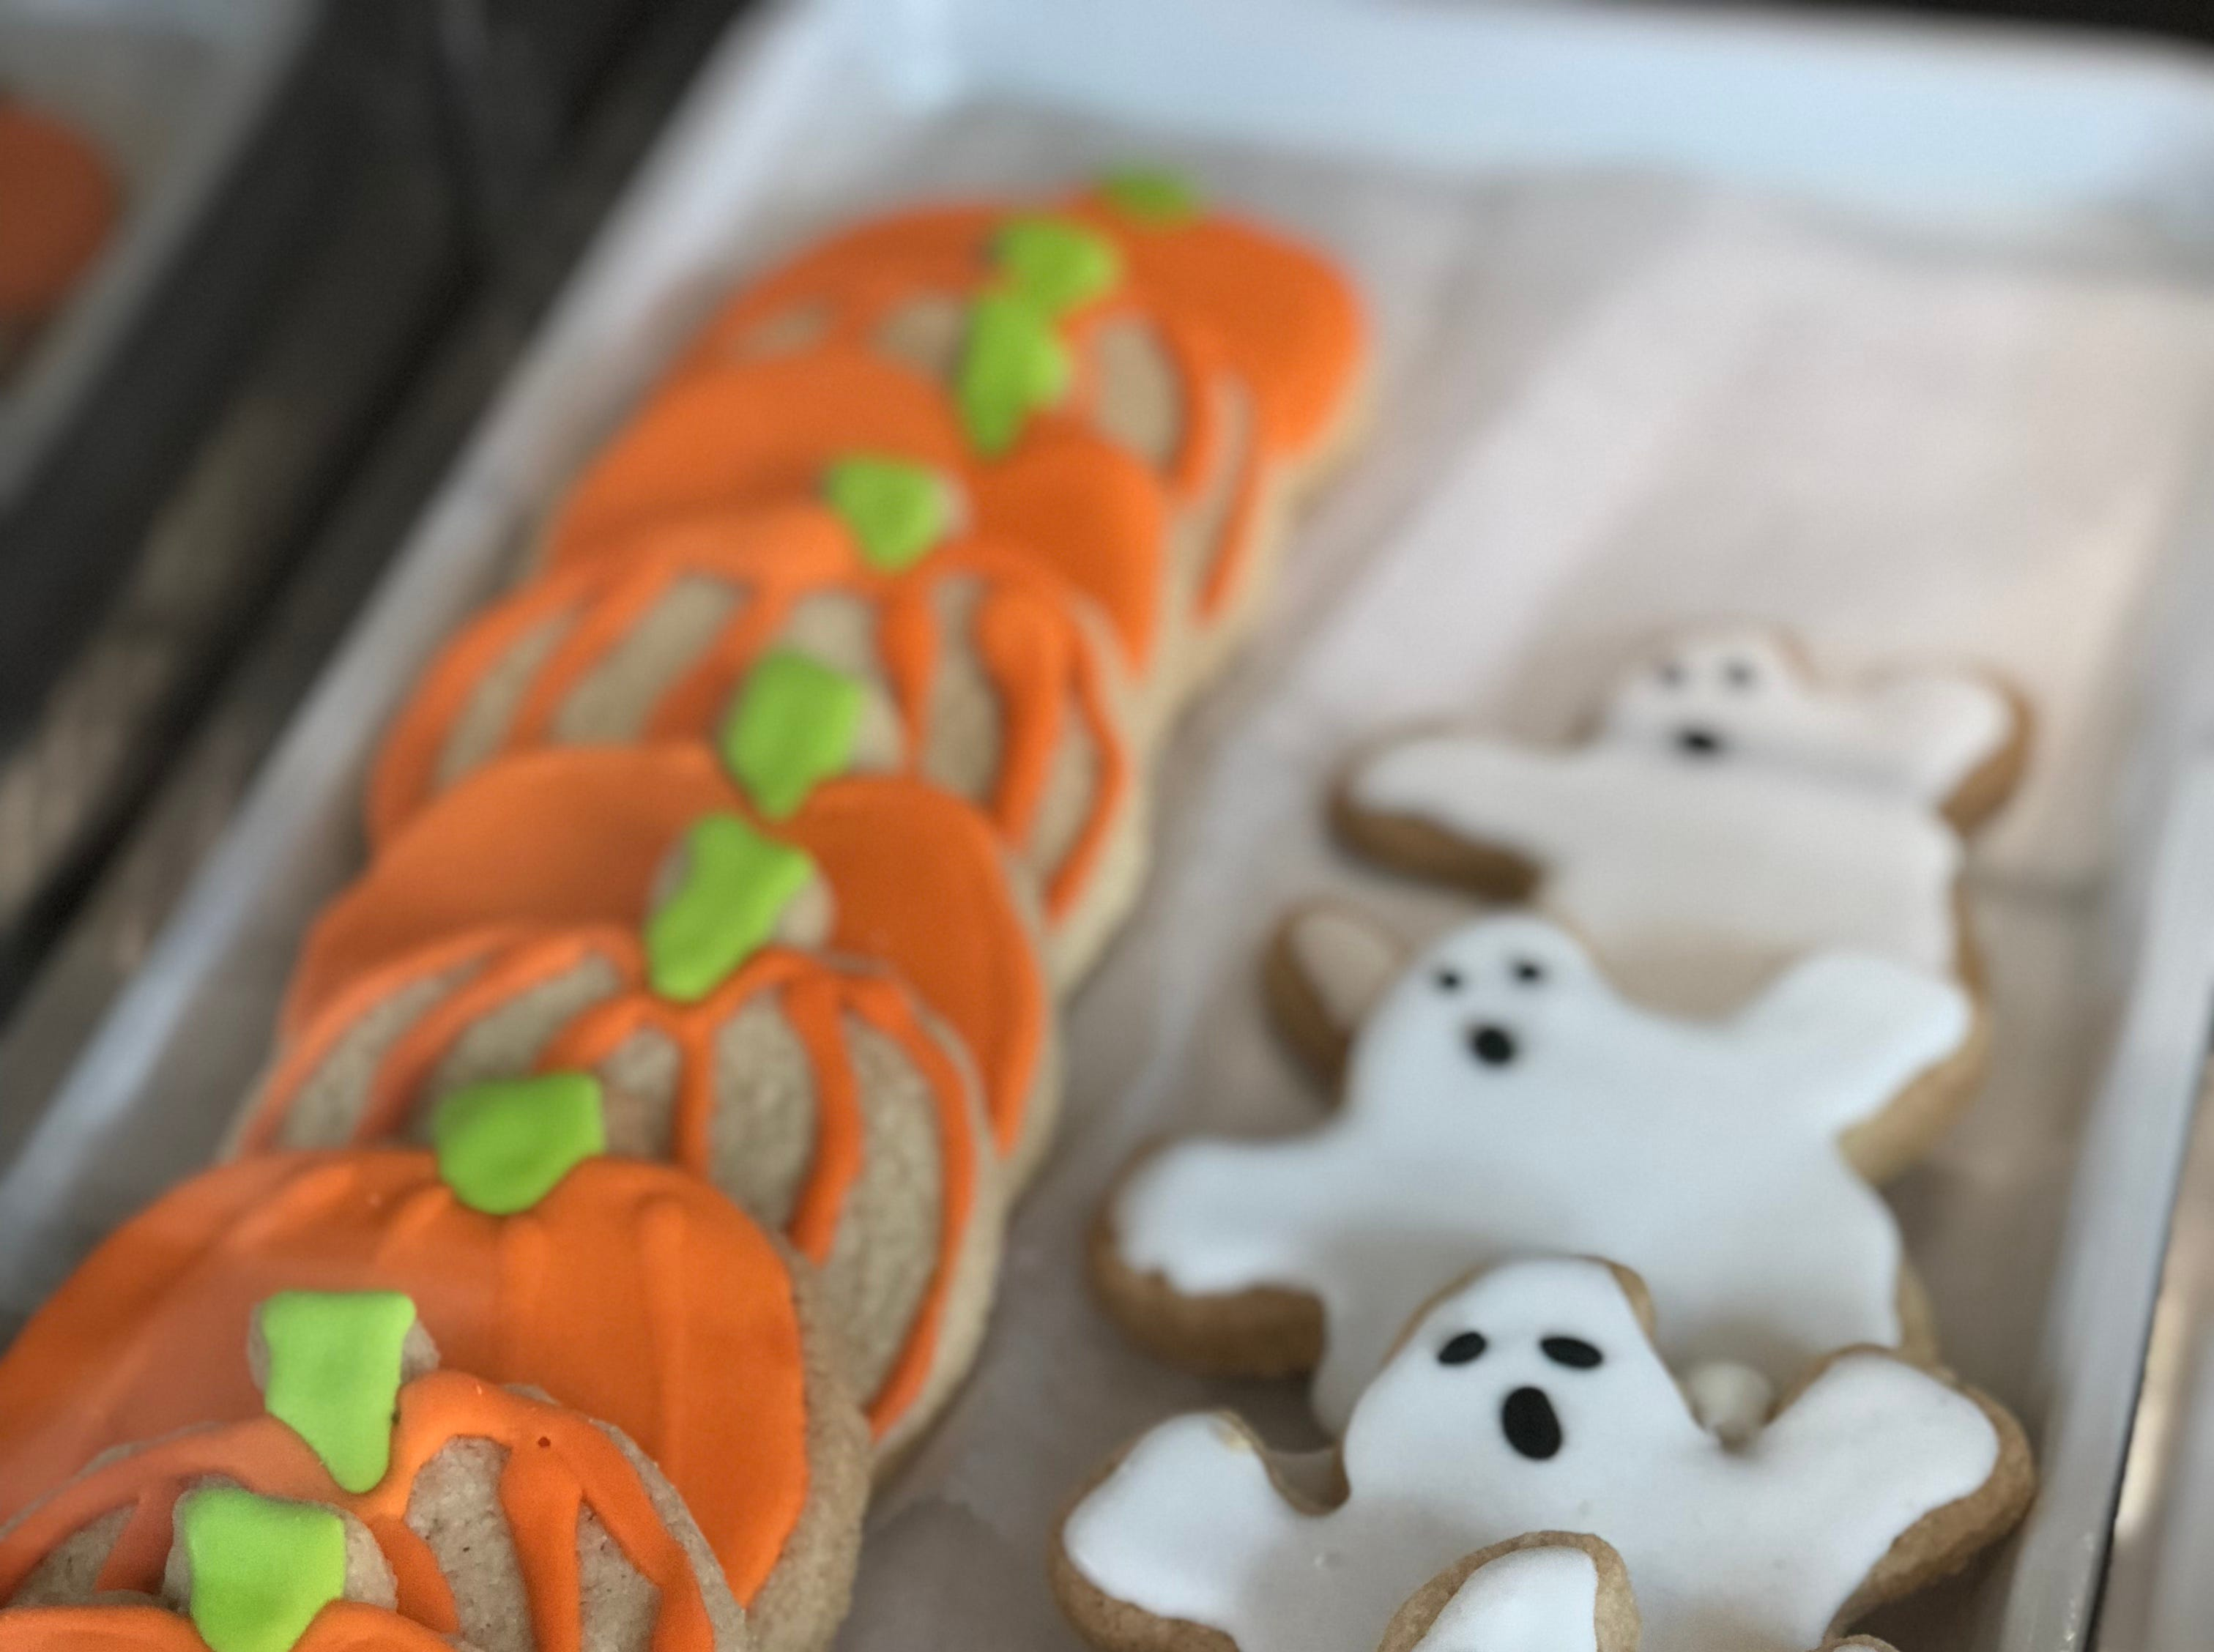 Halloween sugar cookies are a gluten free holiday treat. Mama C's bakery has plans for Thanksgiving and Christmas sugar cookie designs for the holidays.